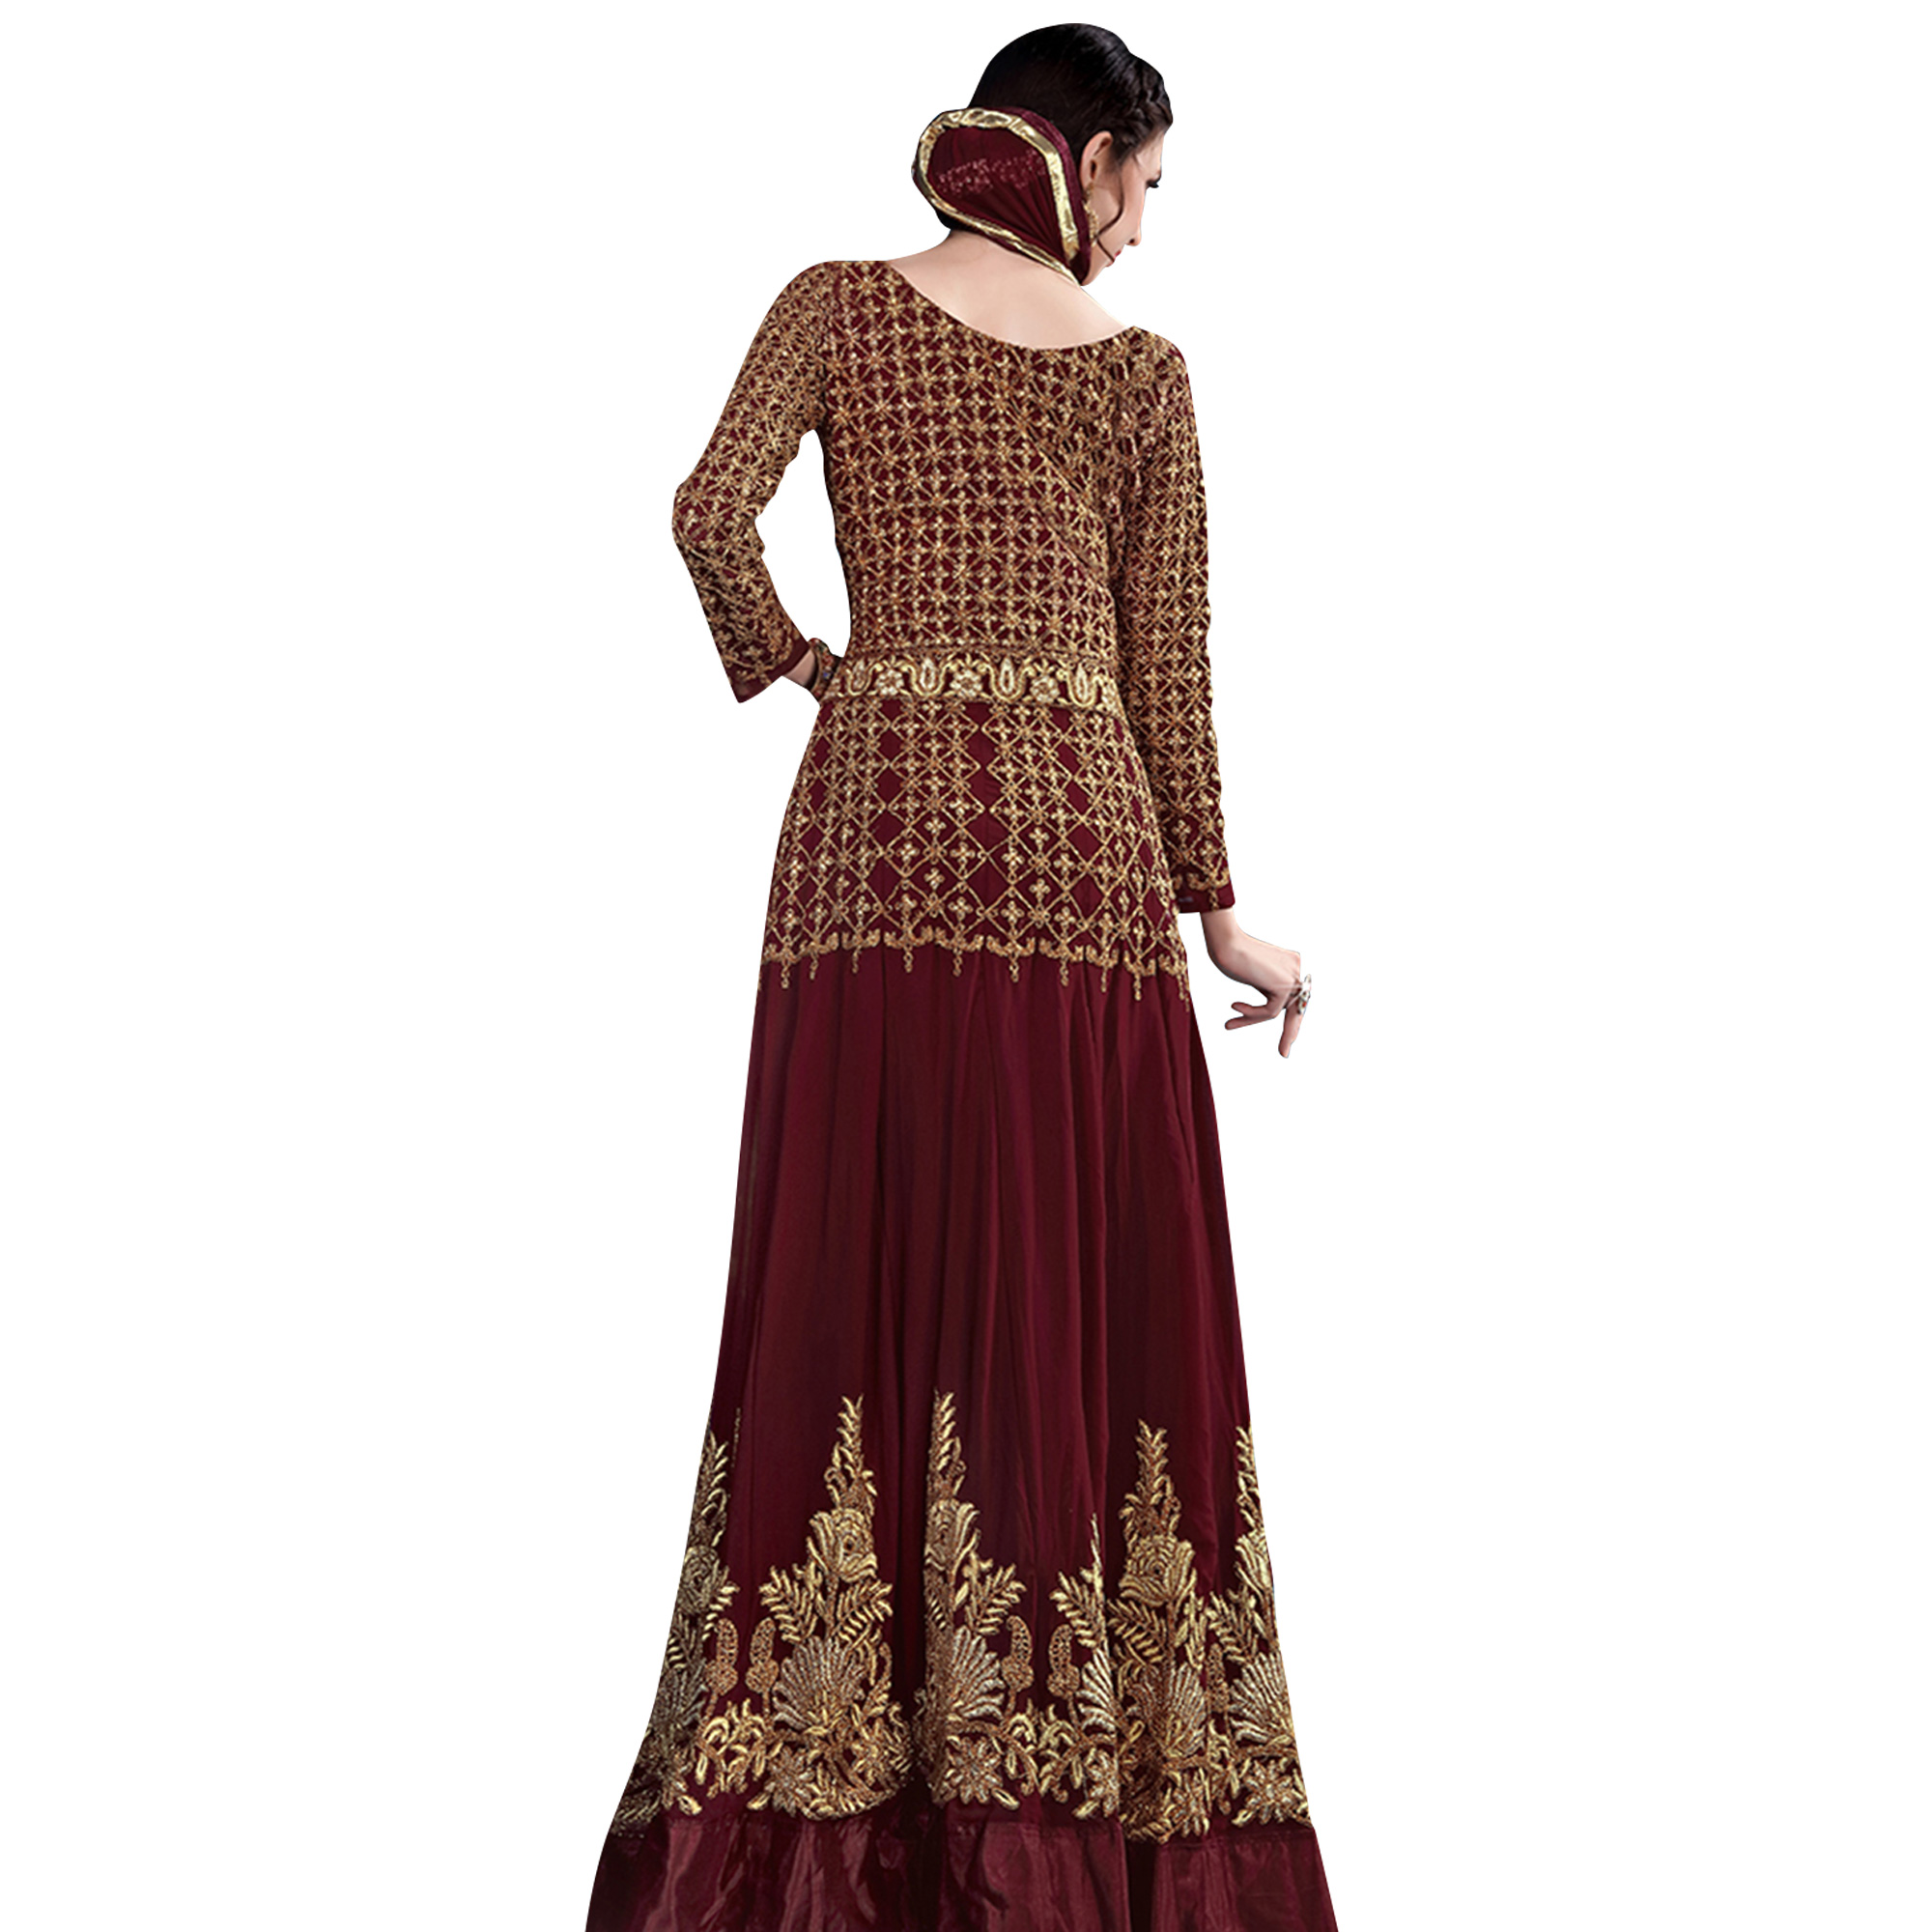 Breathtaking Maroon Colored Designer Heavy Embroidered Georgette Anarkali Suit